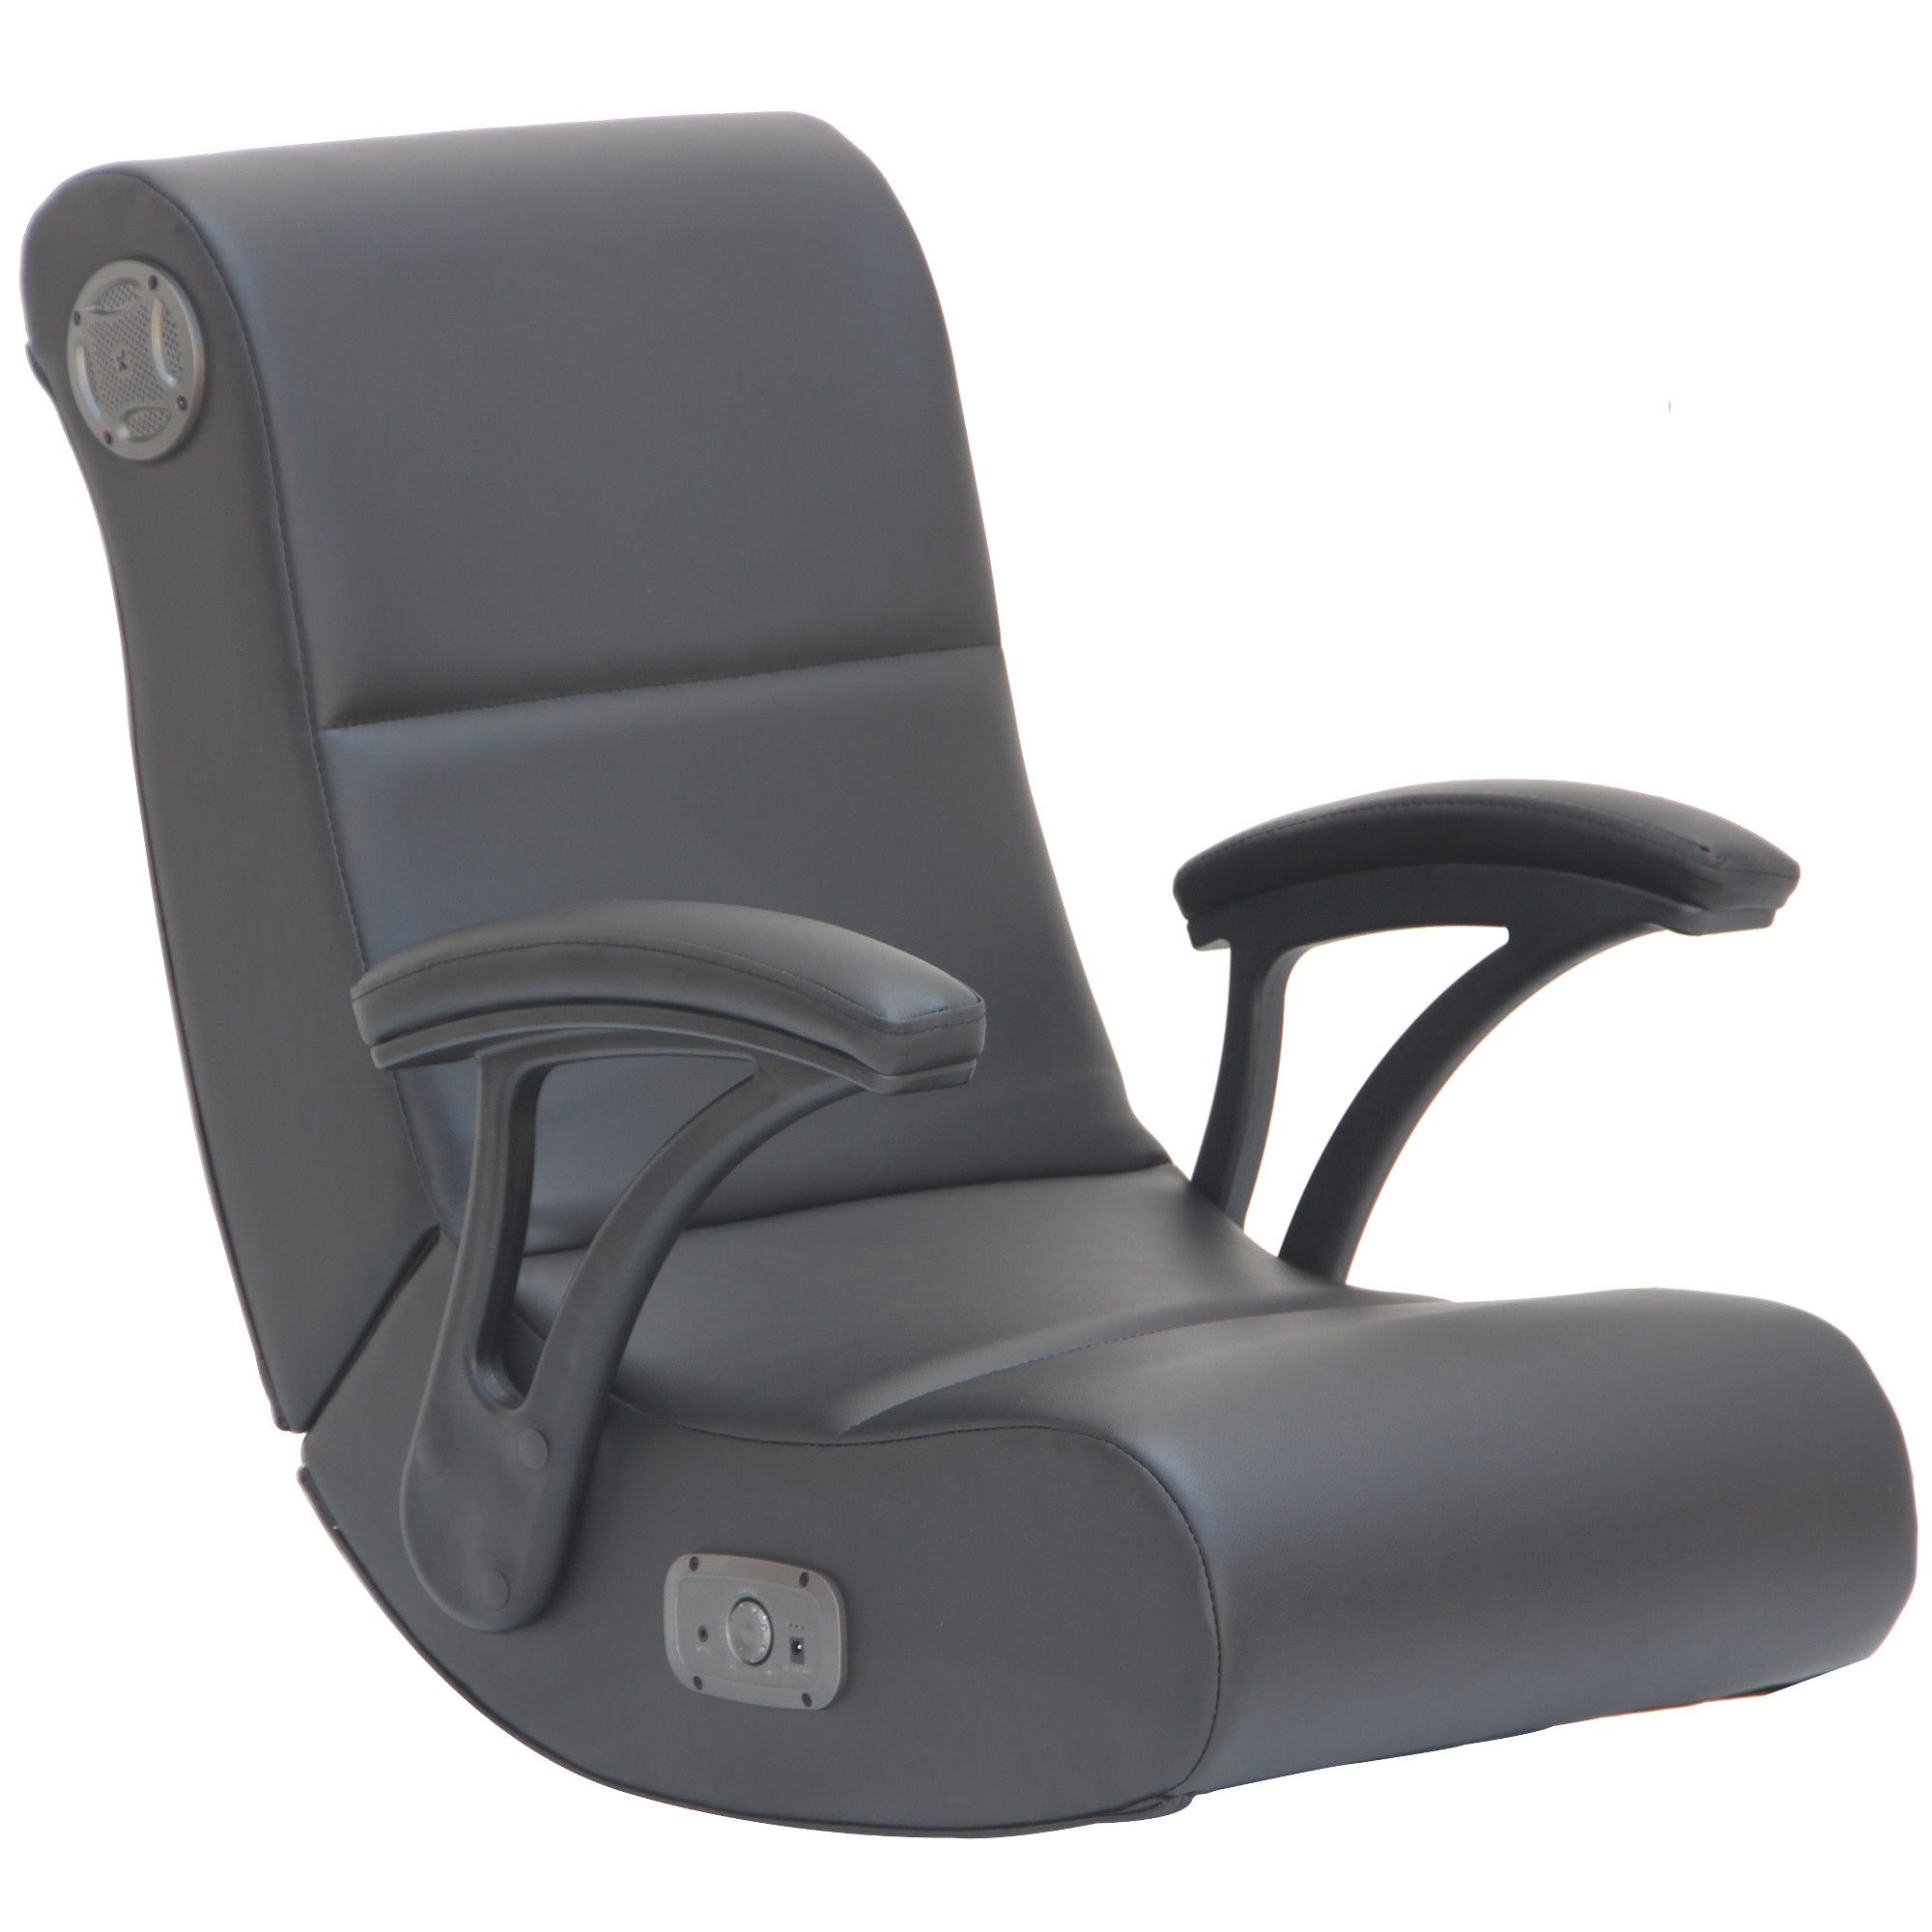 Remarkable Gaming Rocking Chair With Bluetooth Audio System And Arms Ibusinesslaw Wood Chair Design Ideas Ibusinesslaworg